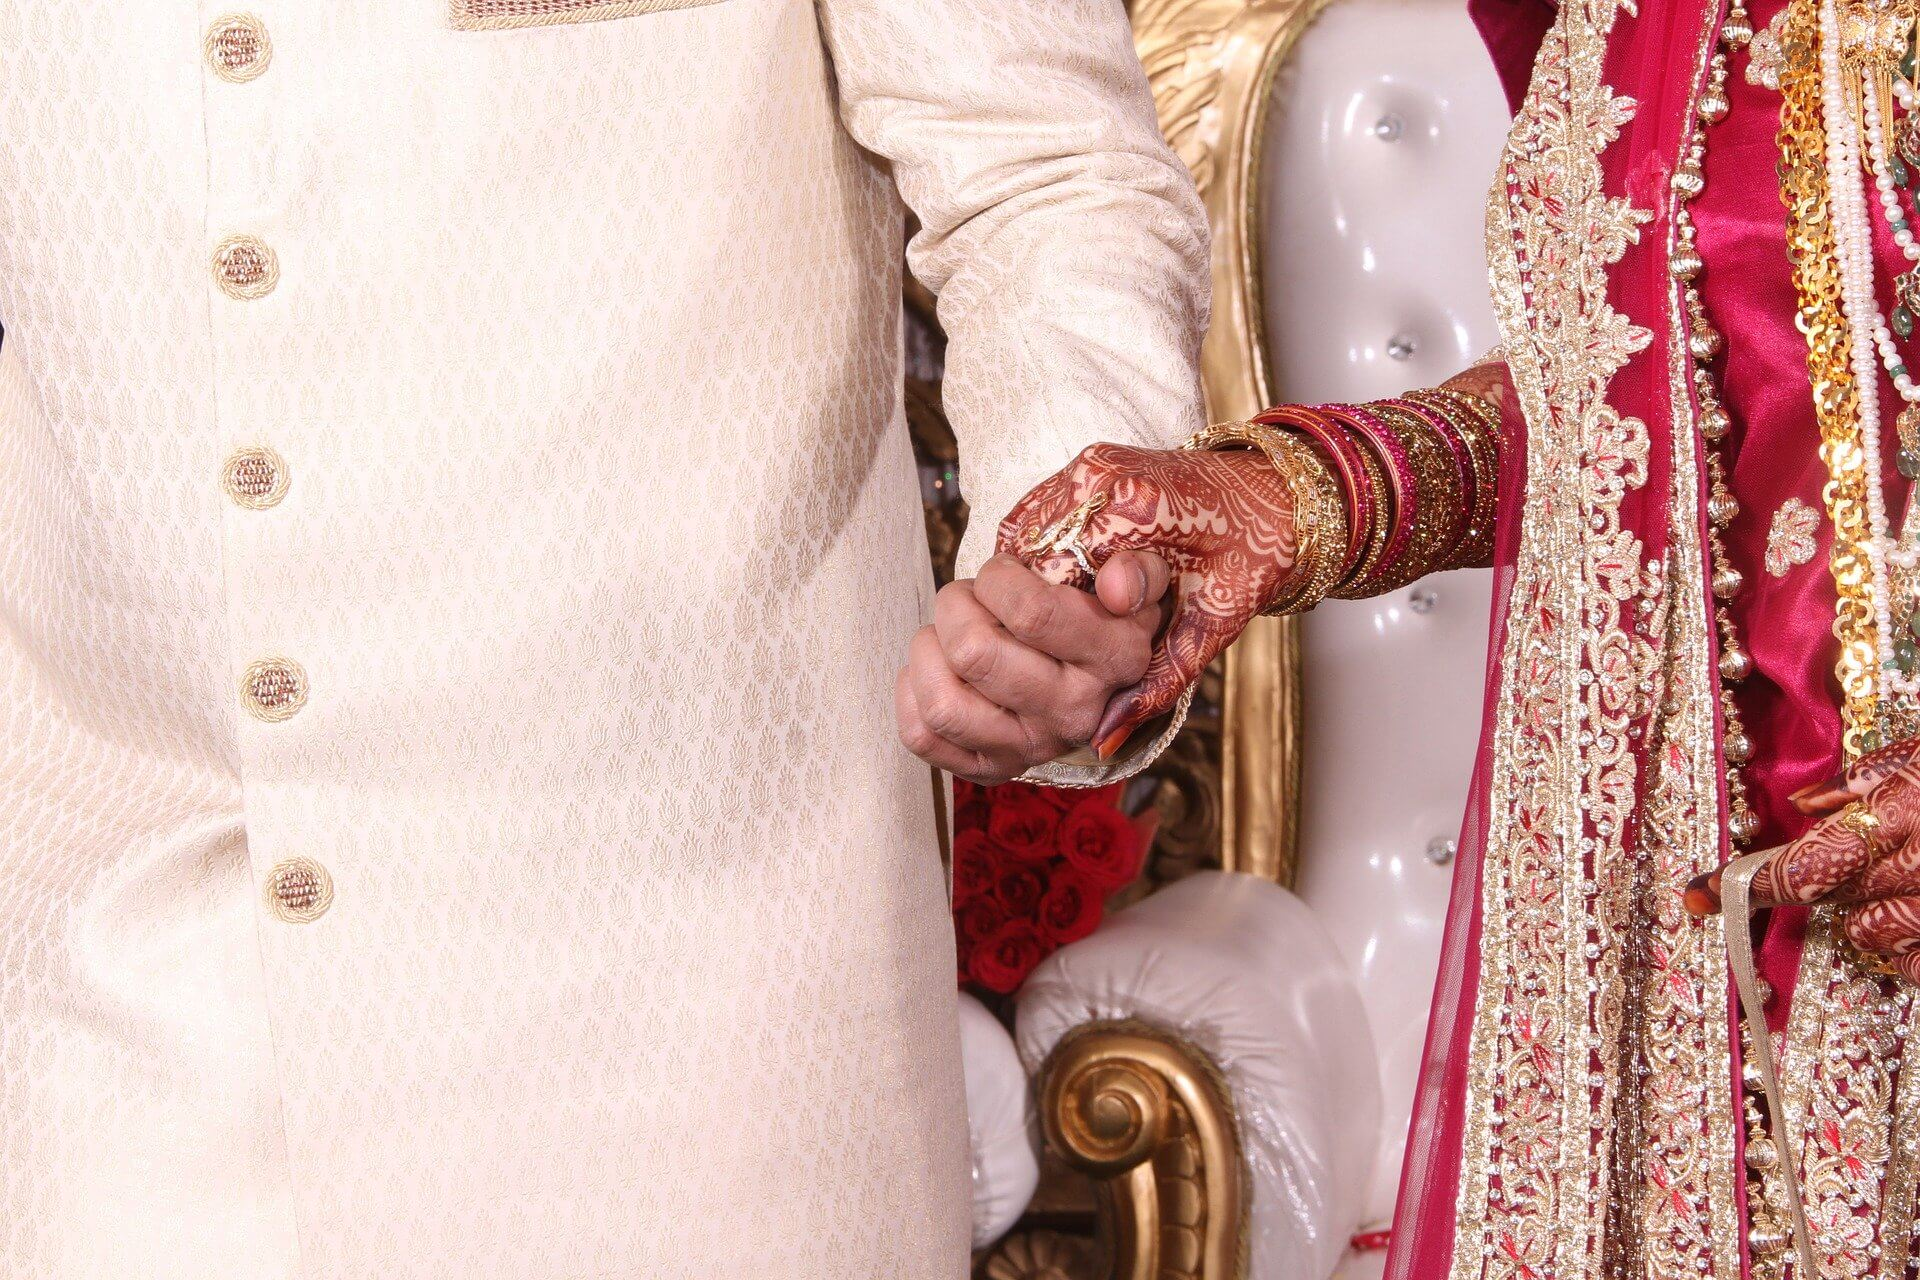 Hindu Wedding Traditions: What to Expect at a Hindu Wedding